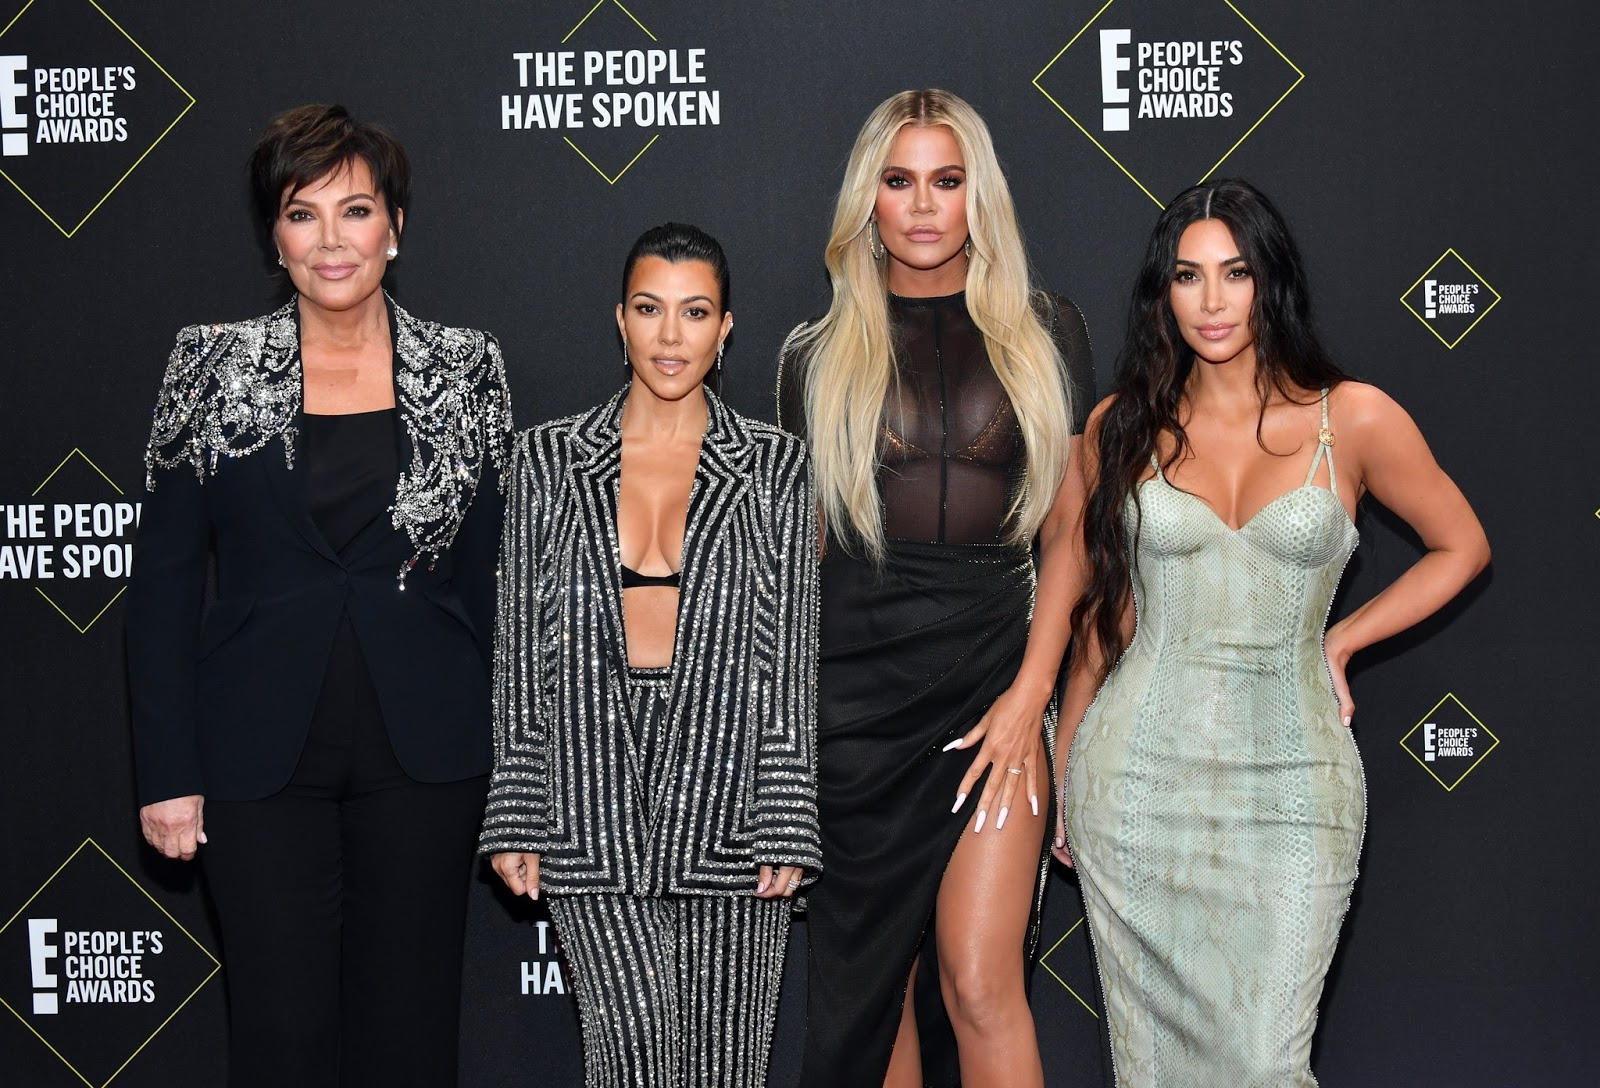 The Kardashian sisters bare curves at the 2019 People's Choice Awards